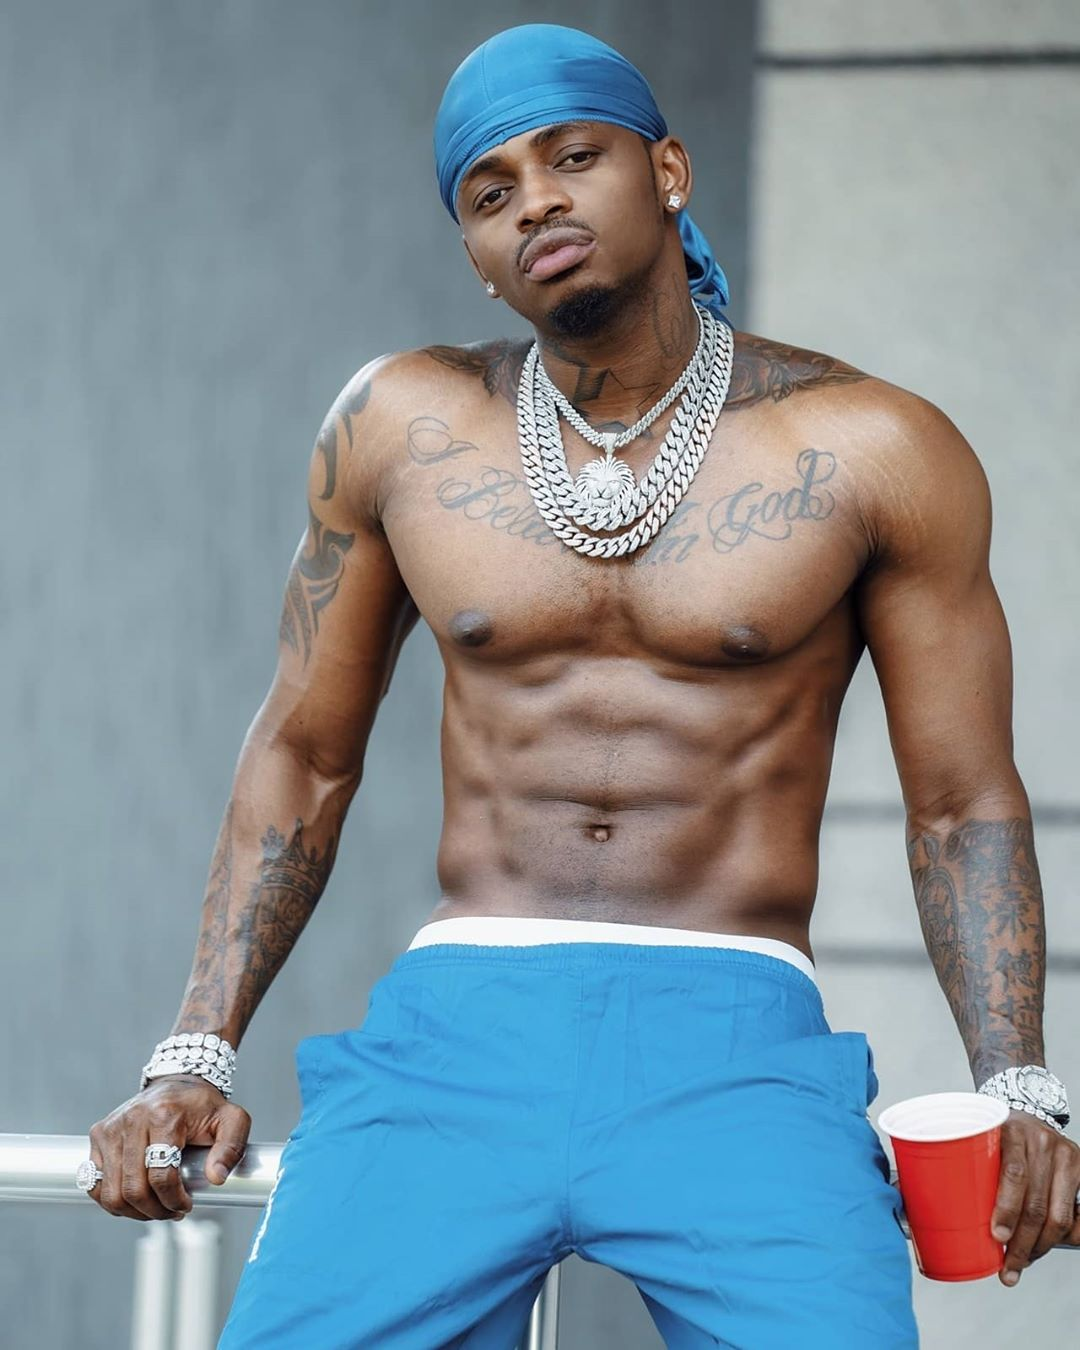 Diamond Platnumz shirtless